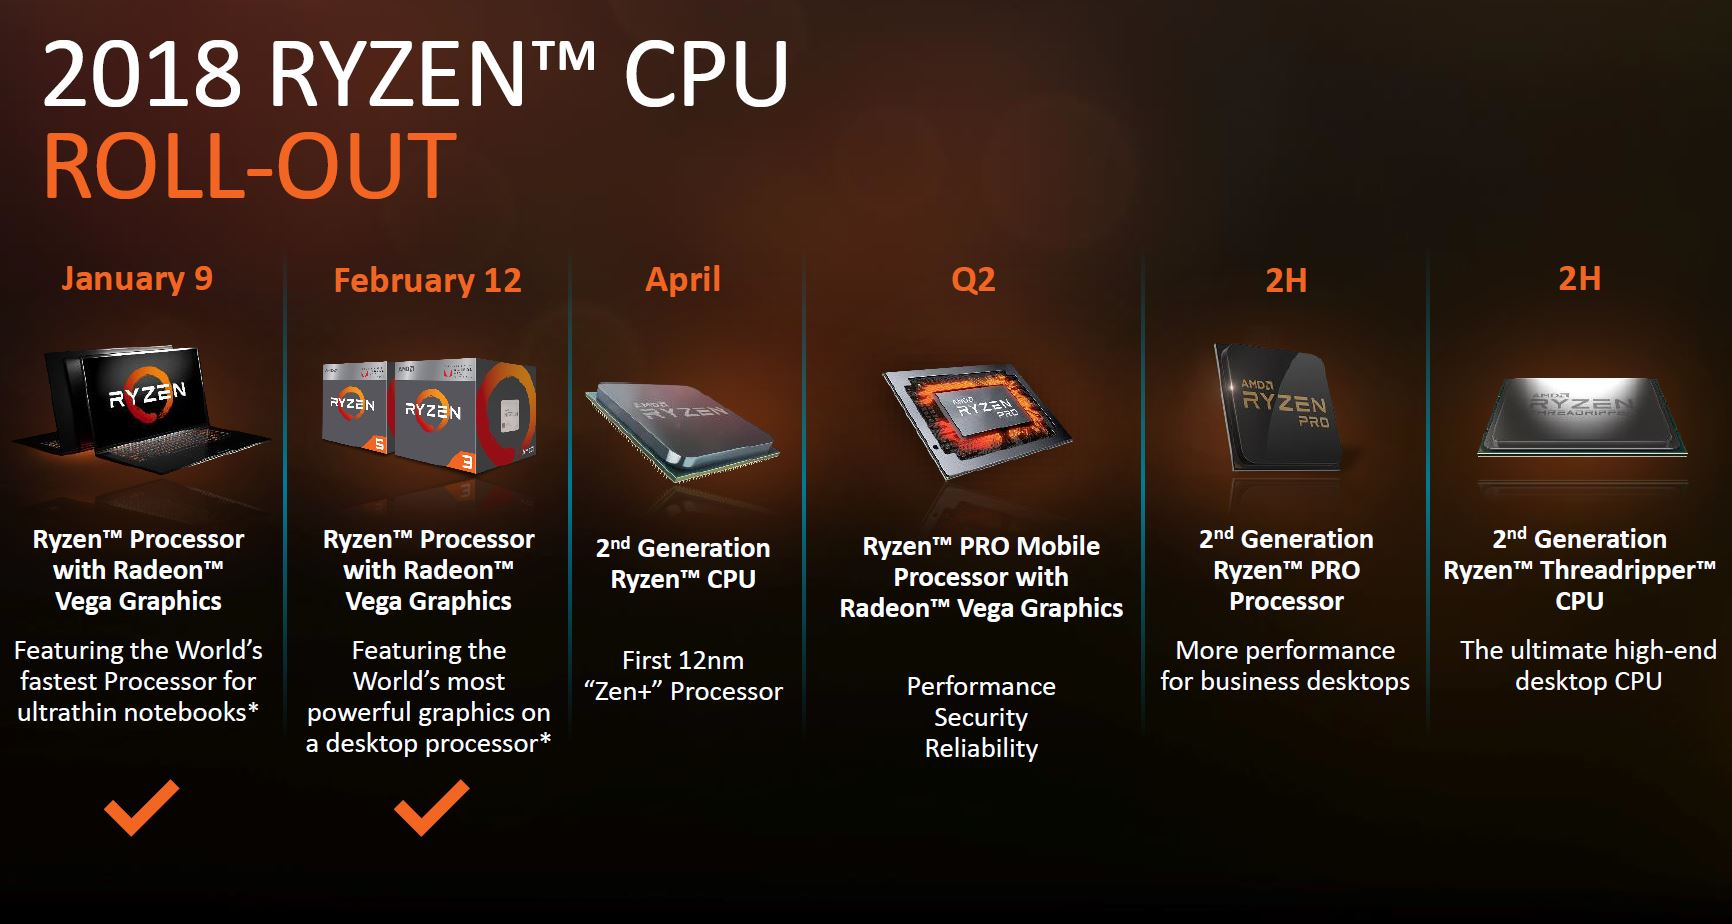 2nd Gen Amd Ryzen Roadmap Servethehome